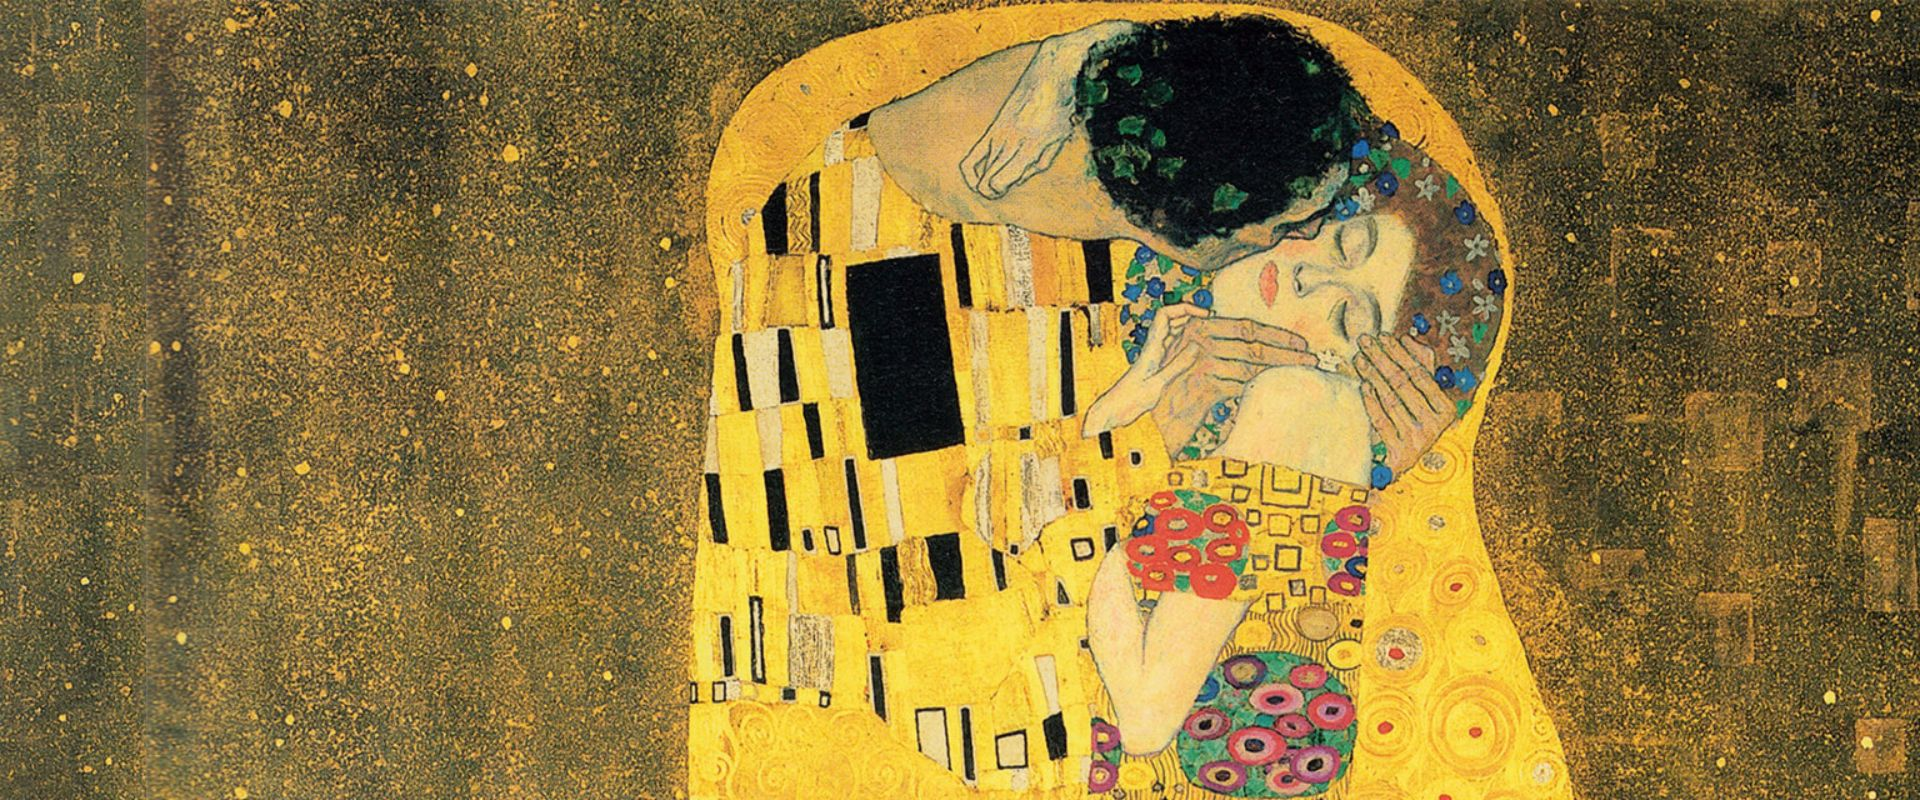 Gustav Klimt Artworks Collection | Buy Posters, Frames, Canvas, Digital Art & Large Size Prints Of The Famous Modern Master's Artworks